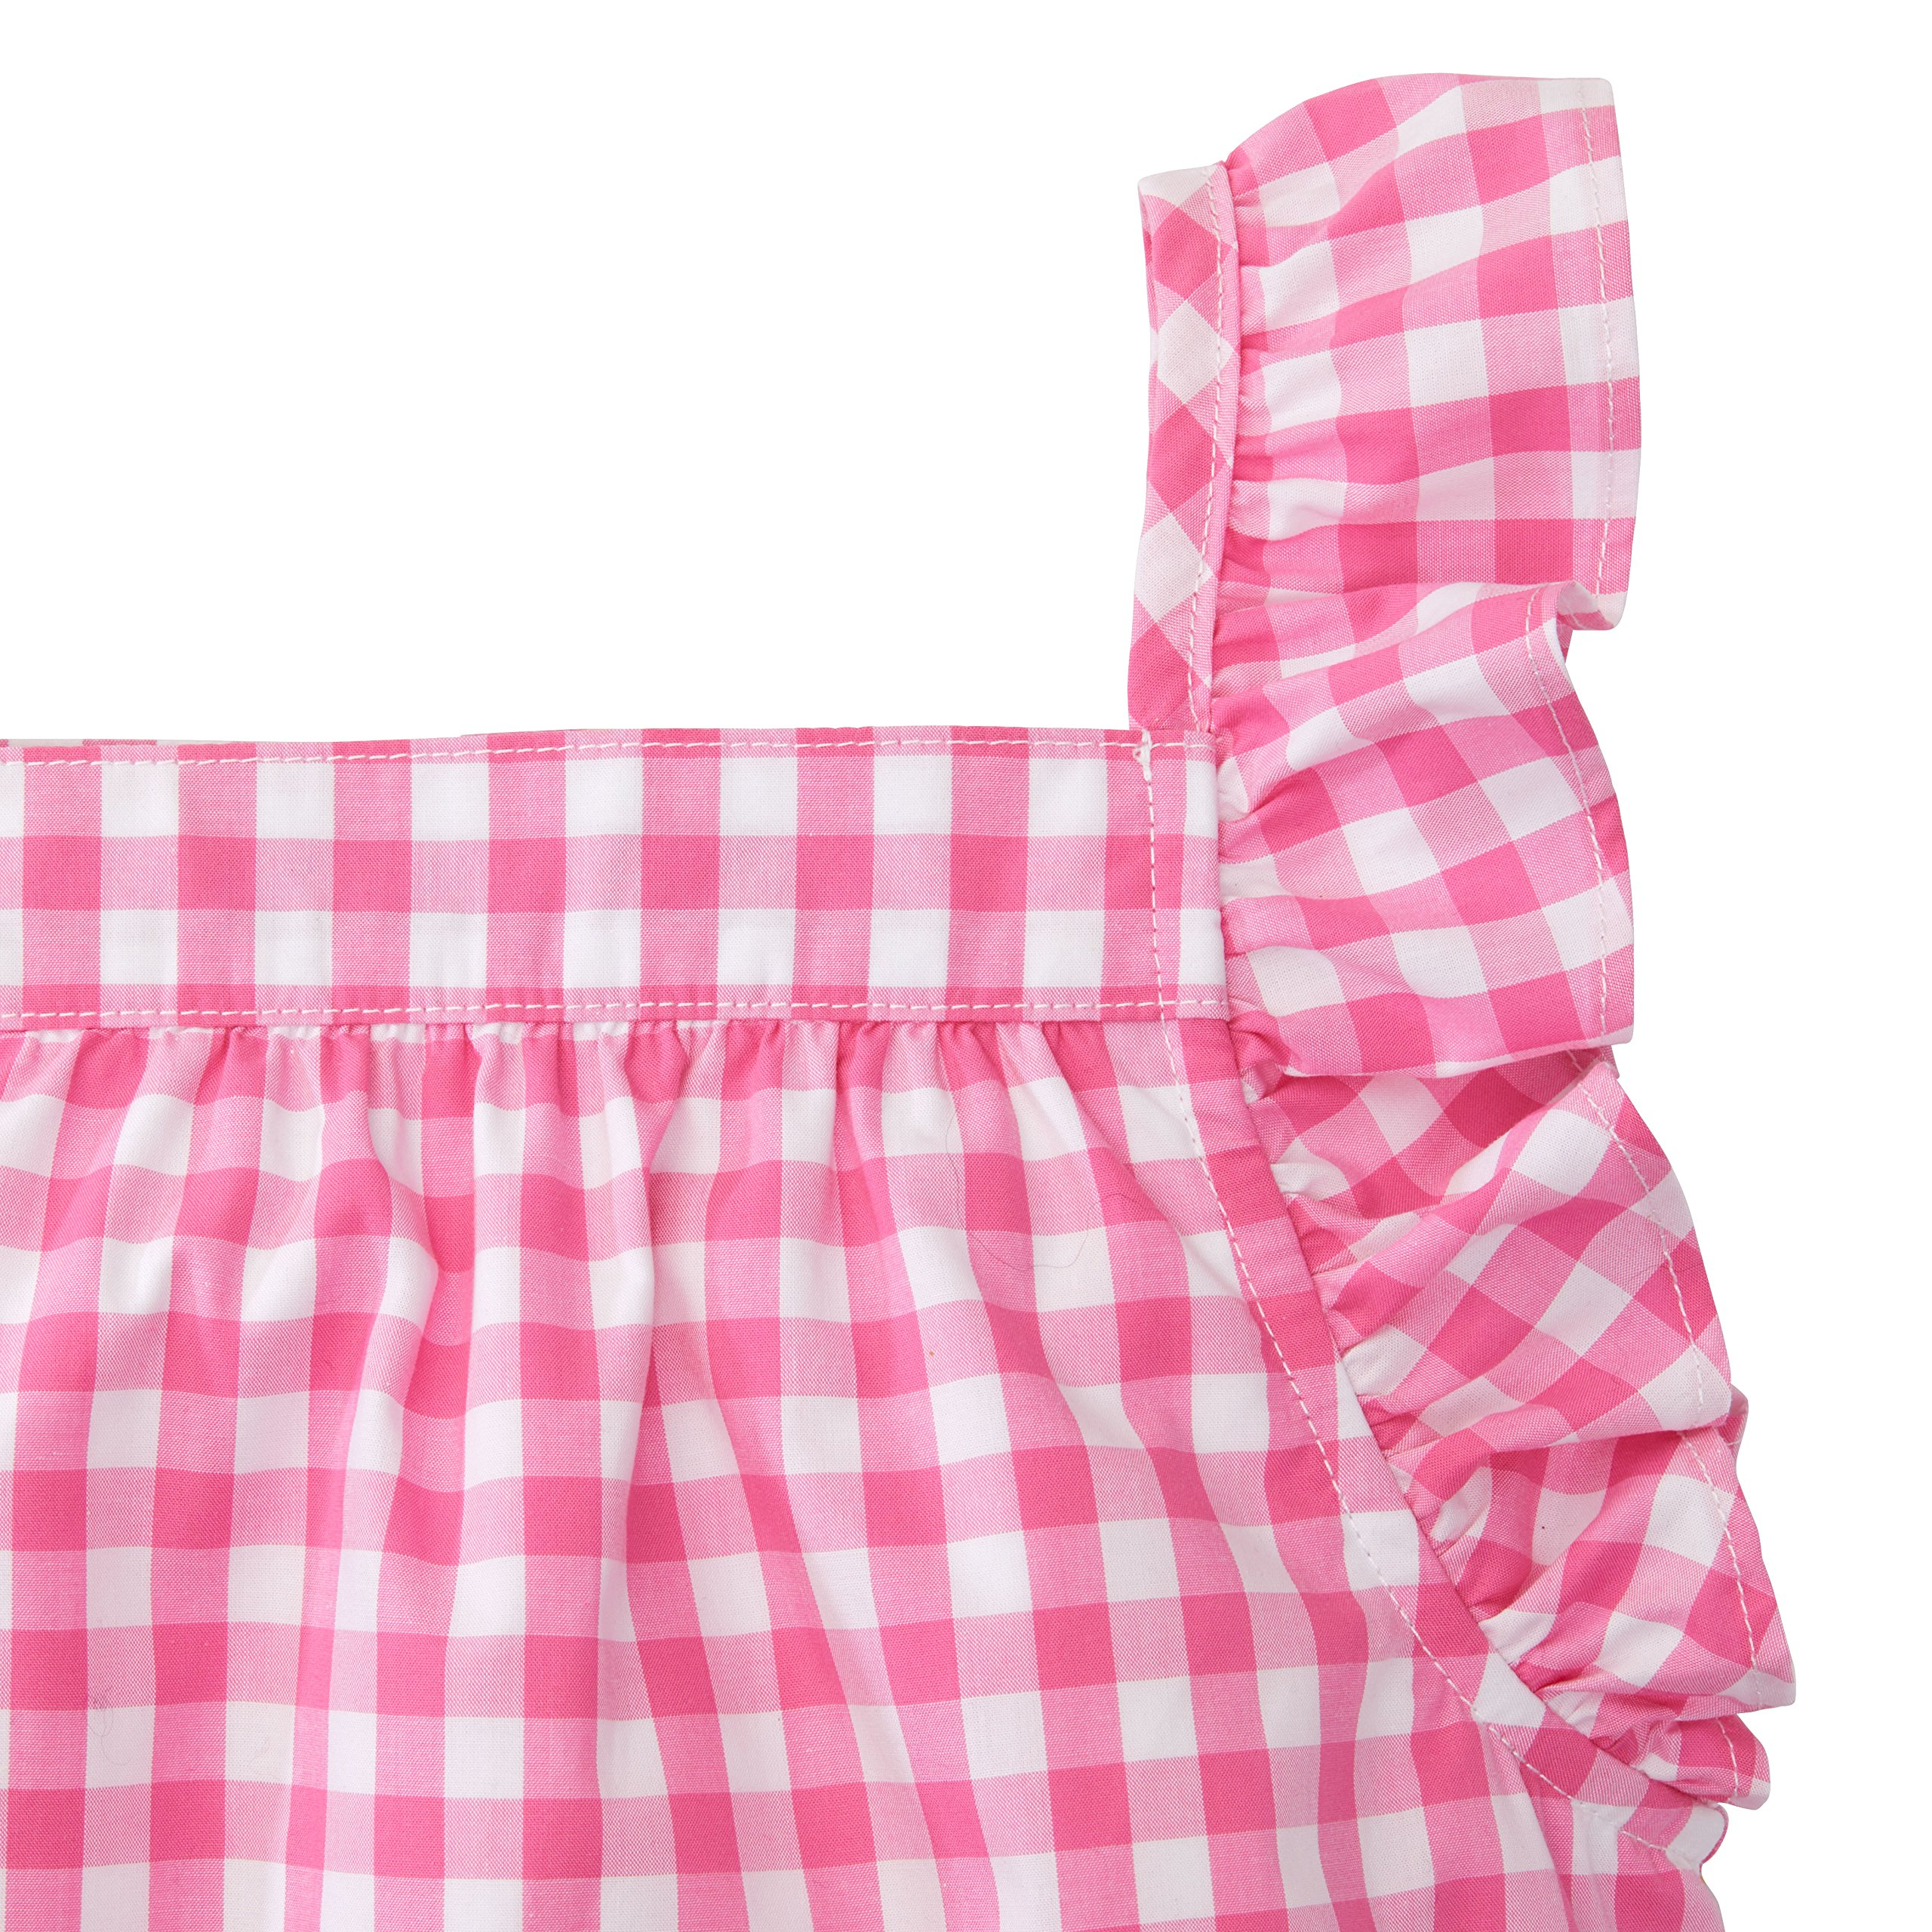 Hope & Henry Girls' Pink Gingham Frill Sleeve Woven Dress Made with Organic Cotton by Hope & Henry (Image #3)